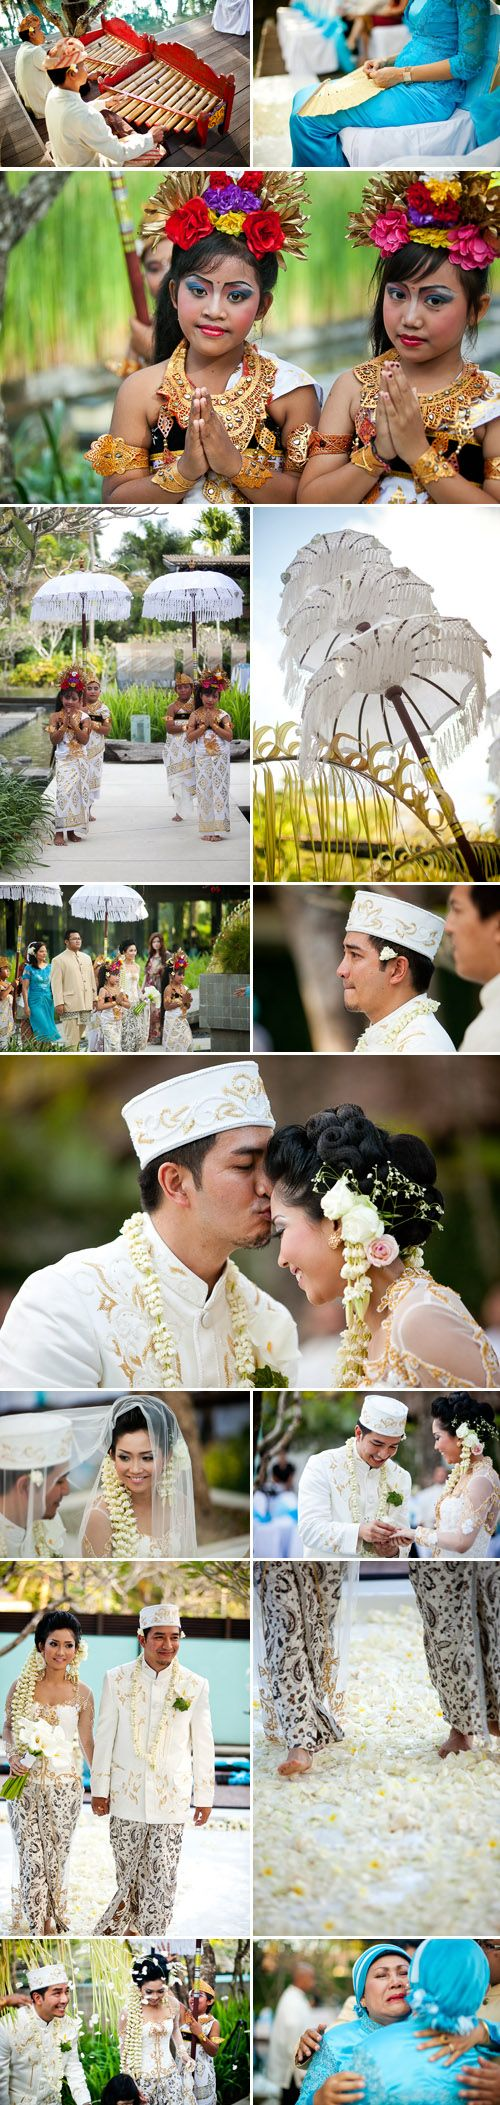 Traditional Indonesian Wedding in Bali | Junebug Weddings